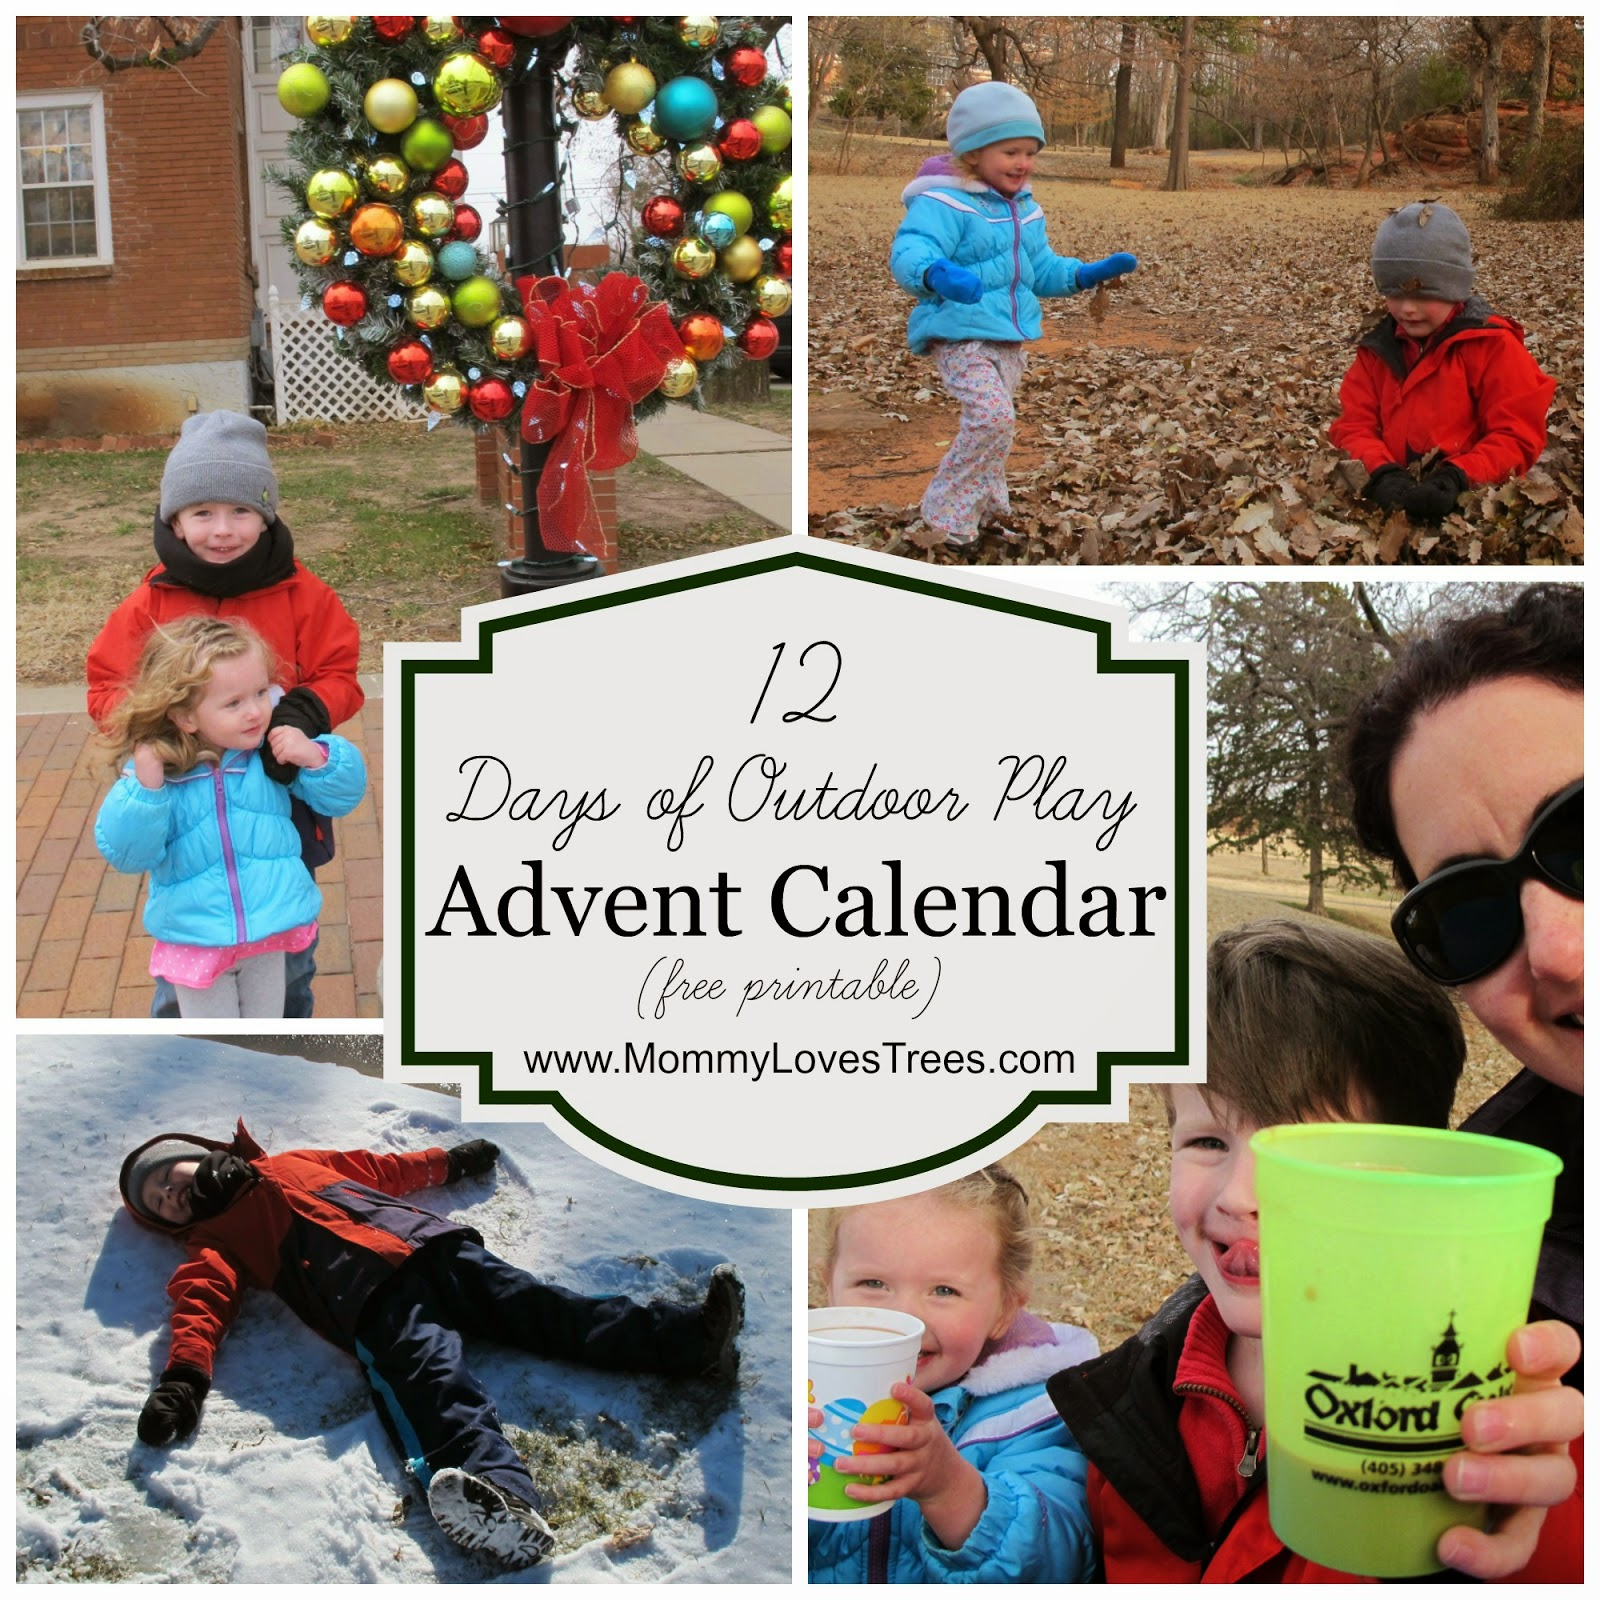 The 12 Days of Outdoor Play Advent Calendar (free printable)